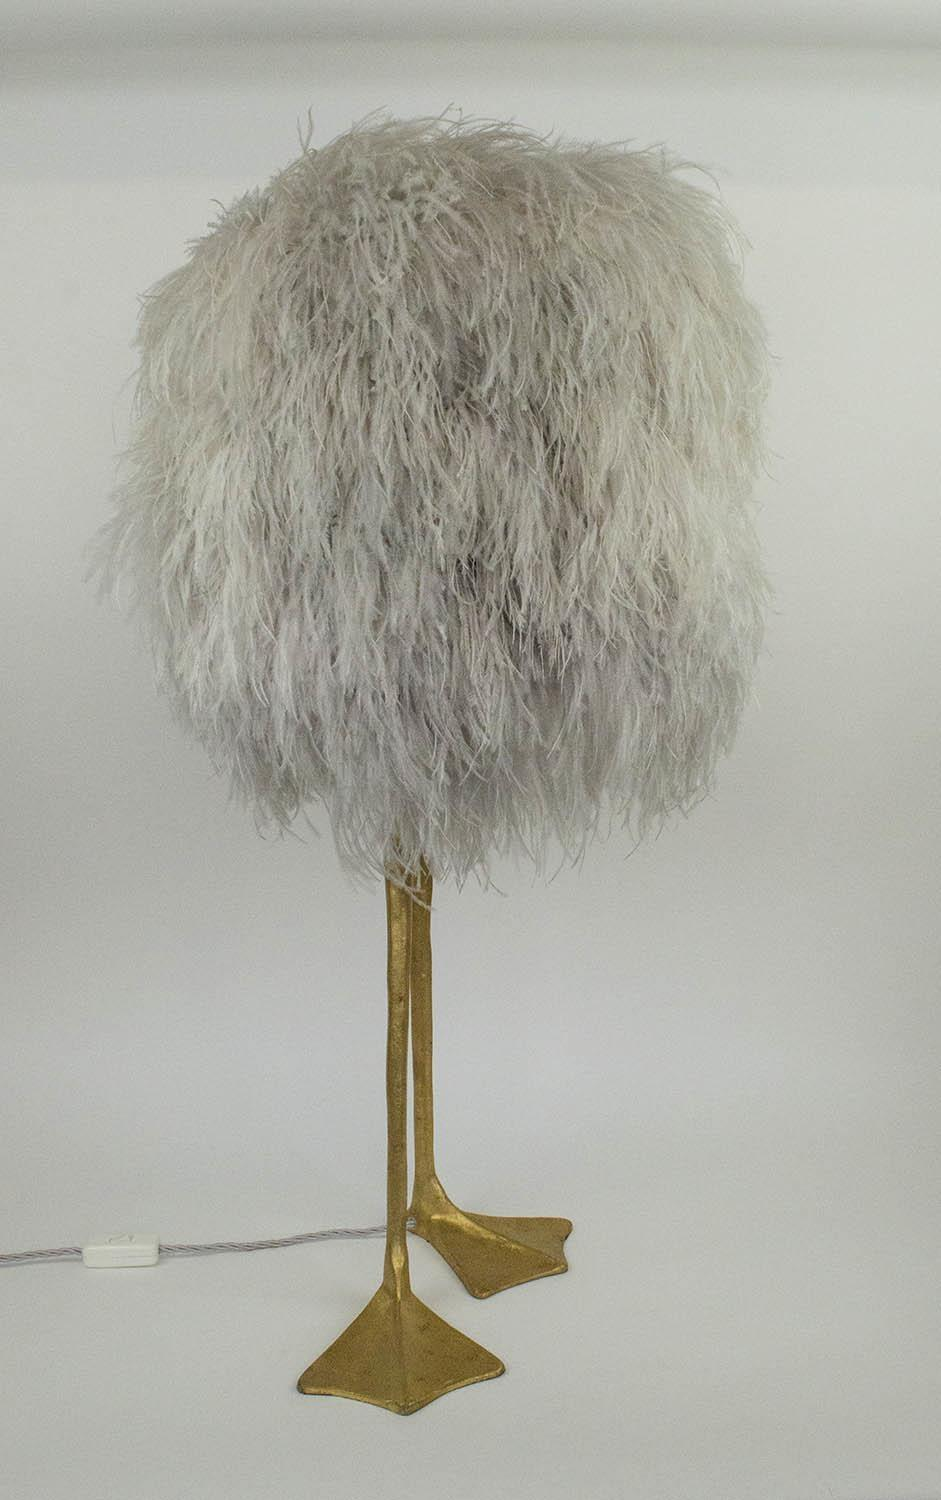 PORTA ROMANA DUCK FEET TABLE LAMP, decayed gold finish with ostrich feather shade, 85cm H.